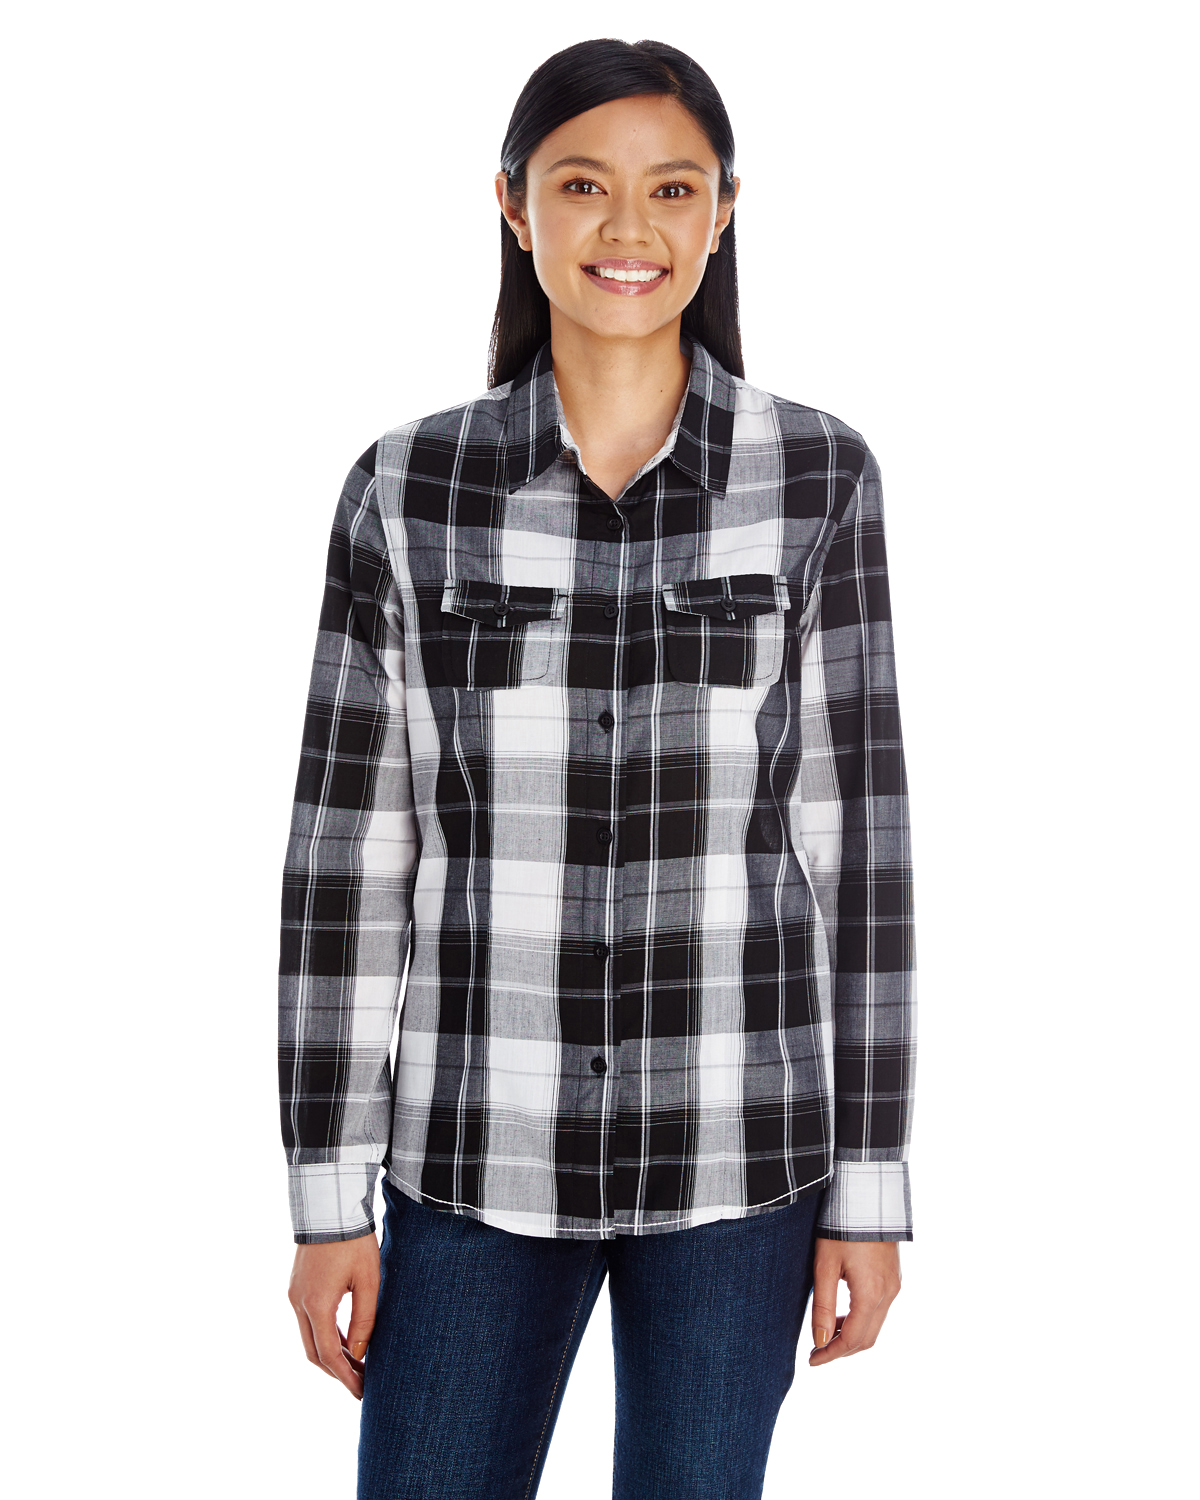 B5222 - Burnside Ladies' Long-Sleeve Plaid Pattern Woven Shirt (5 color)